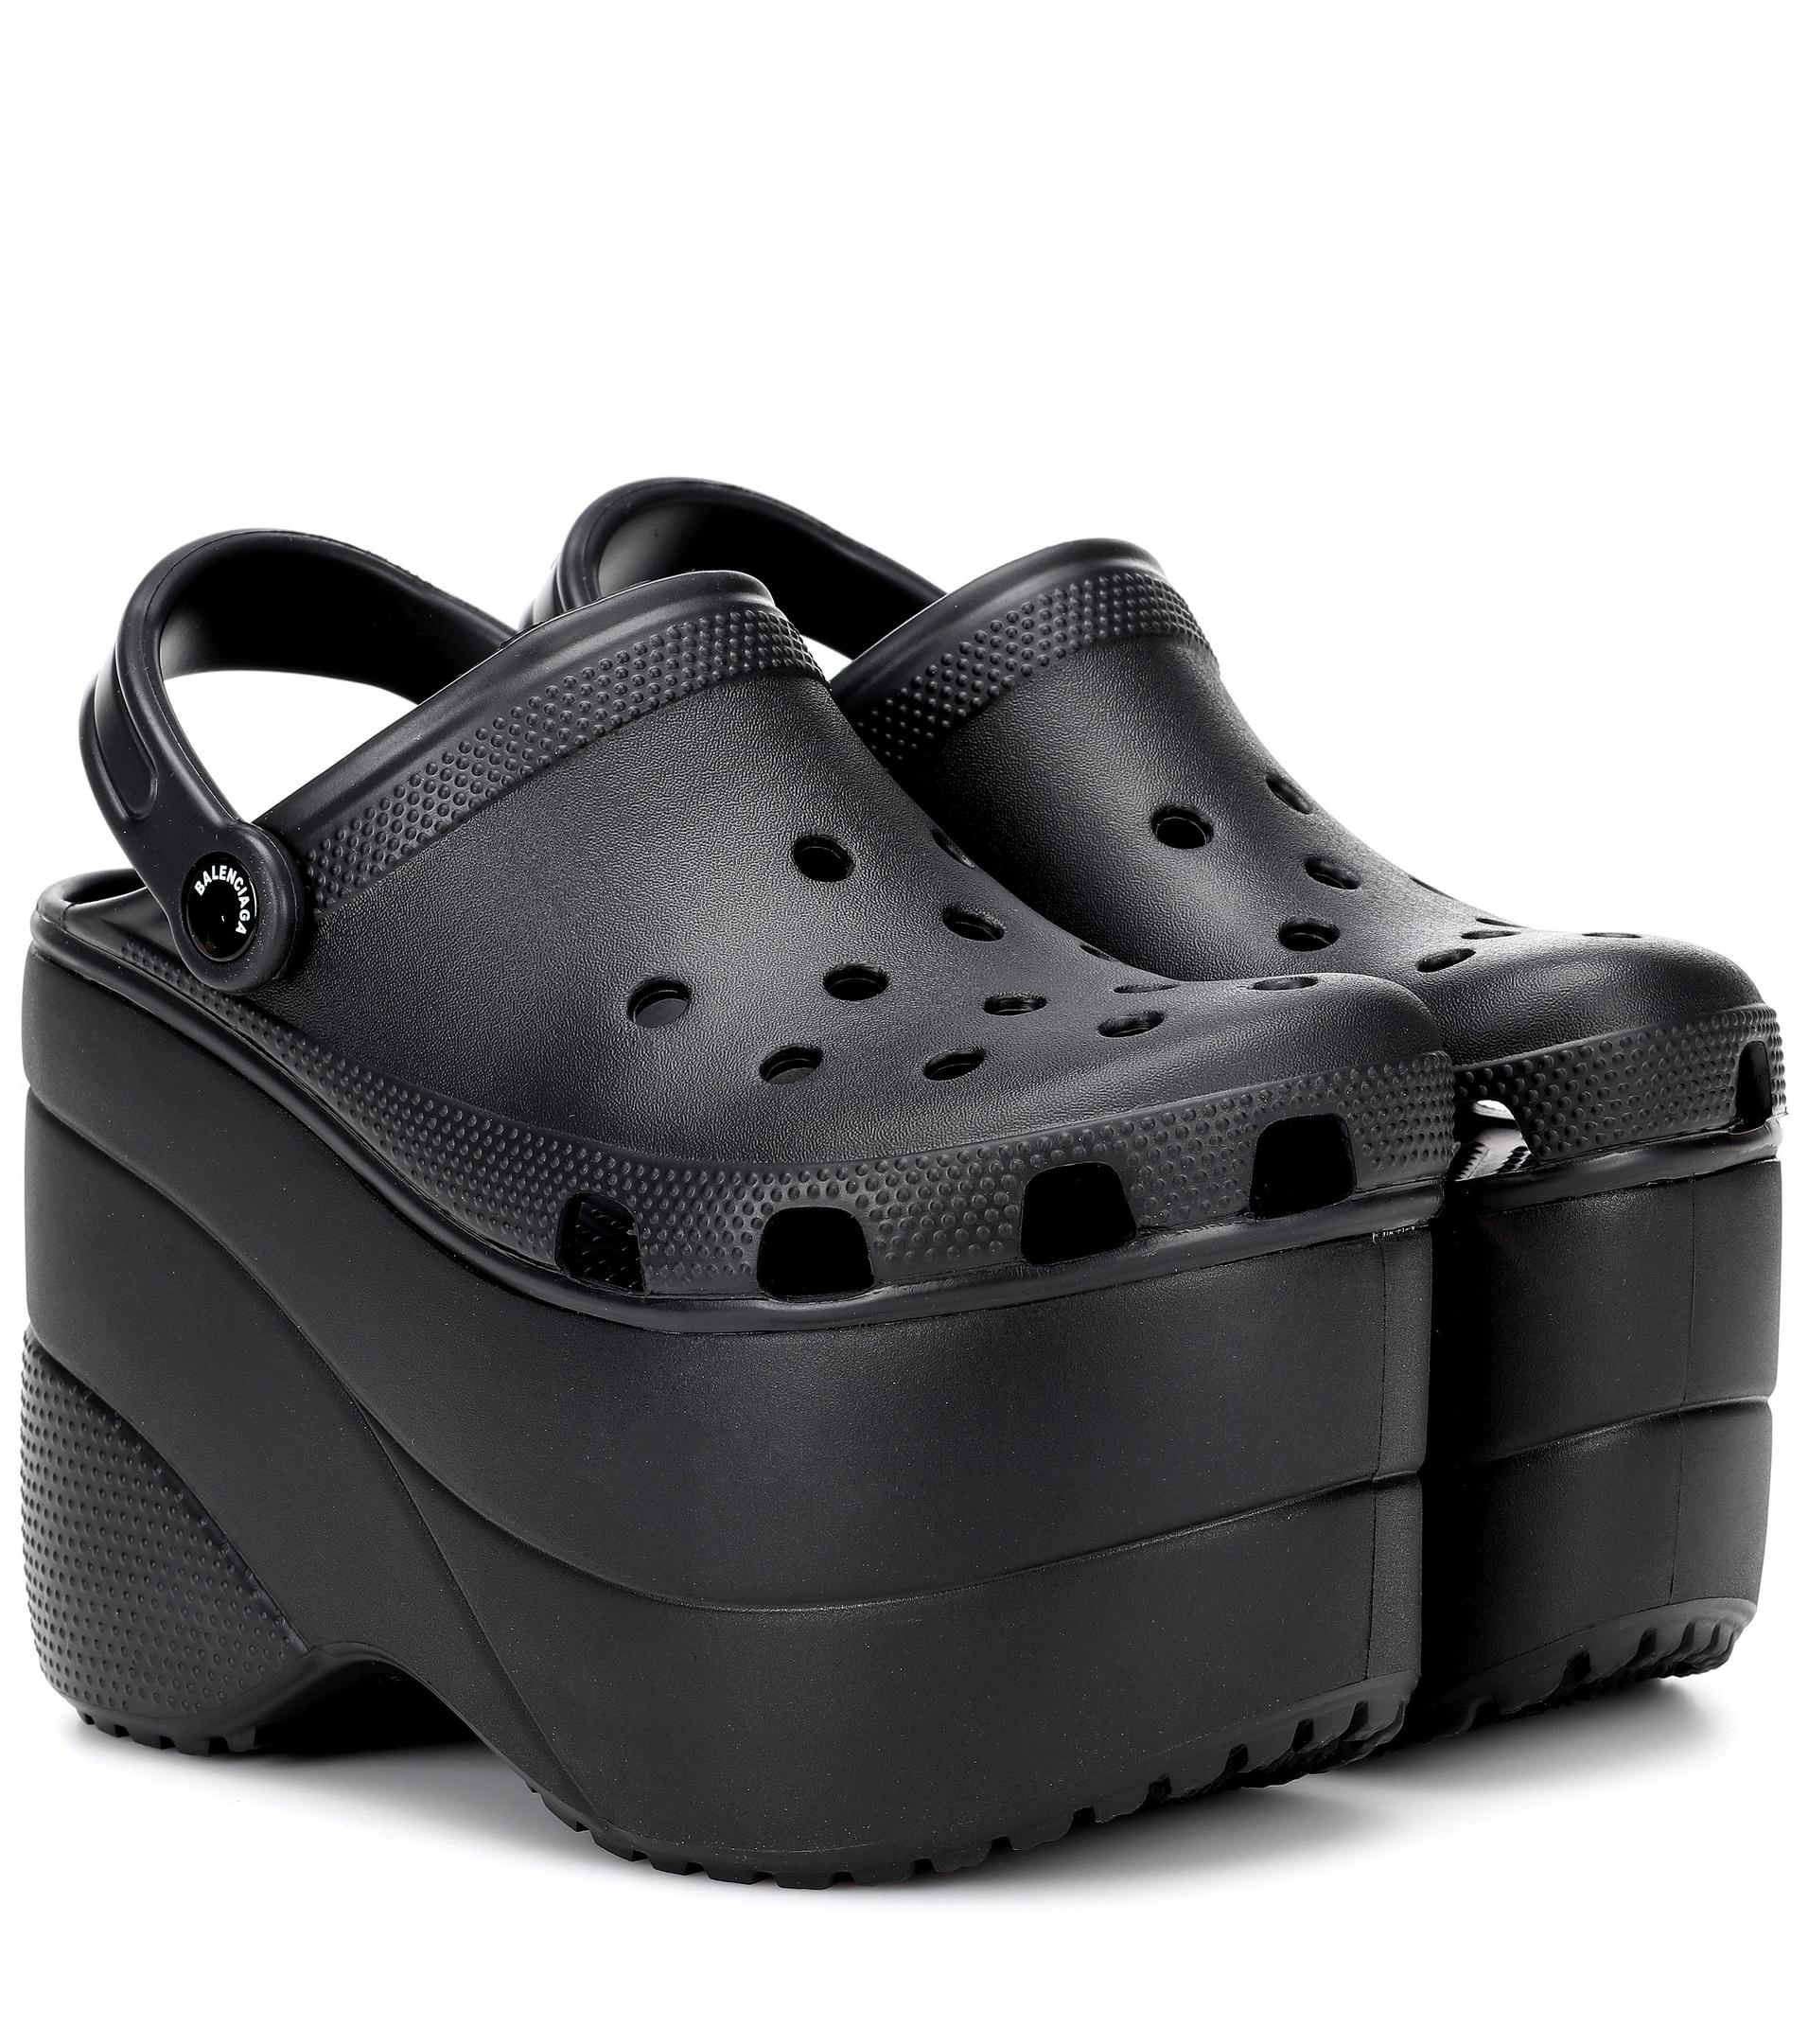 6cd1471b5f70 Lyst - Balenciaga Platform Crocs in Black